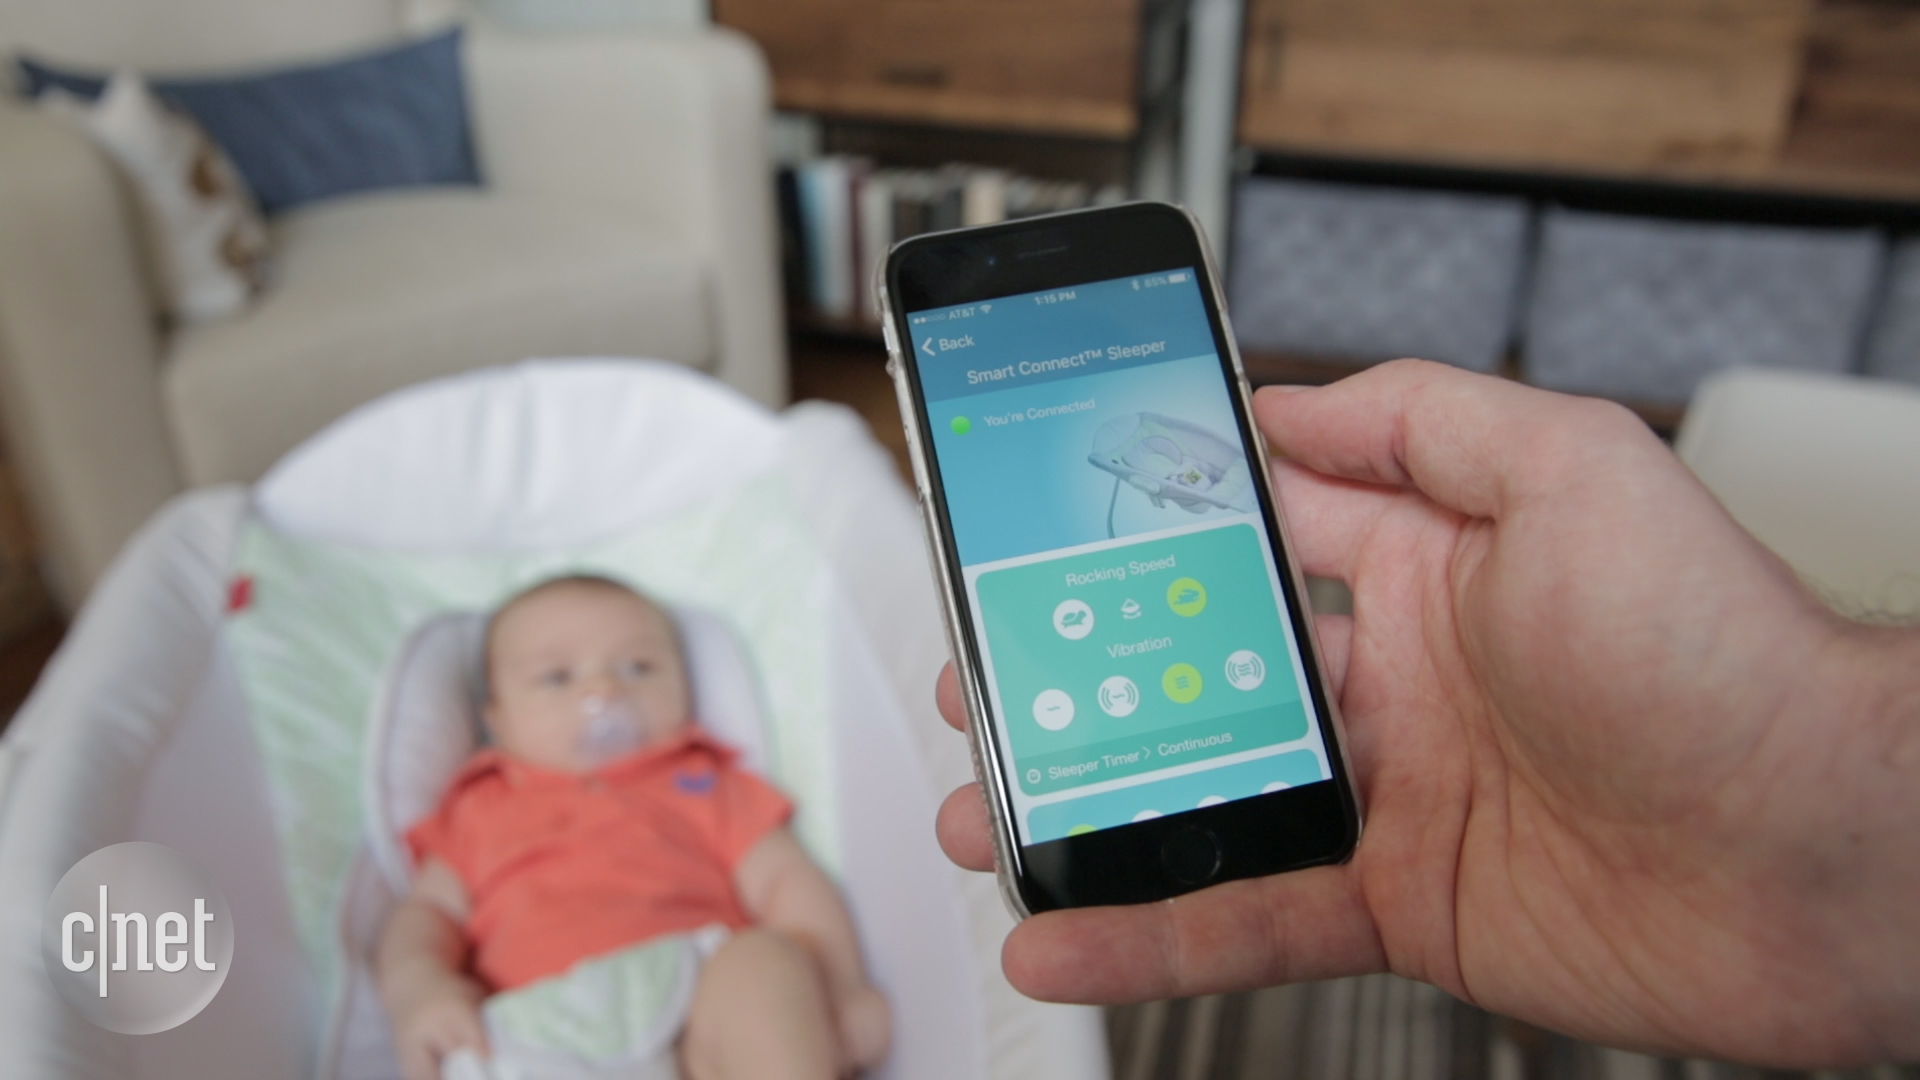 Video: This smart baby sleeper makes parenting seem easy